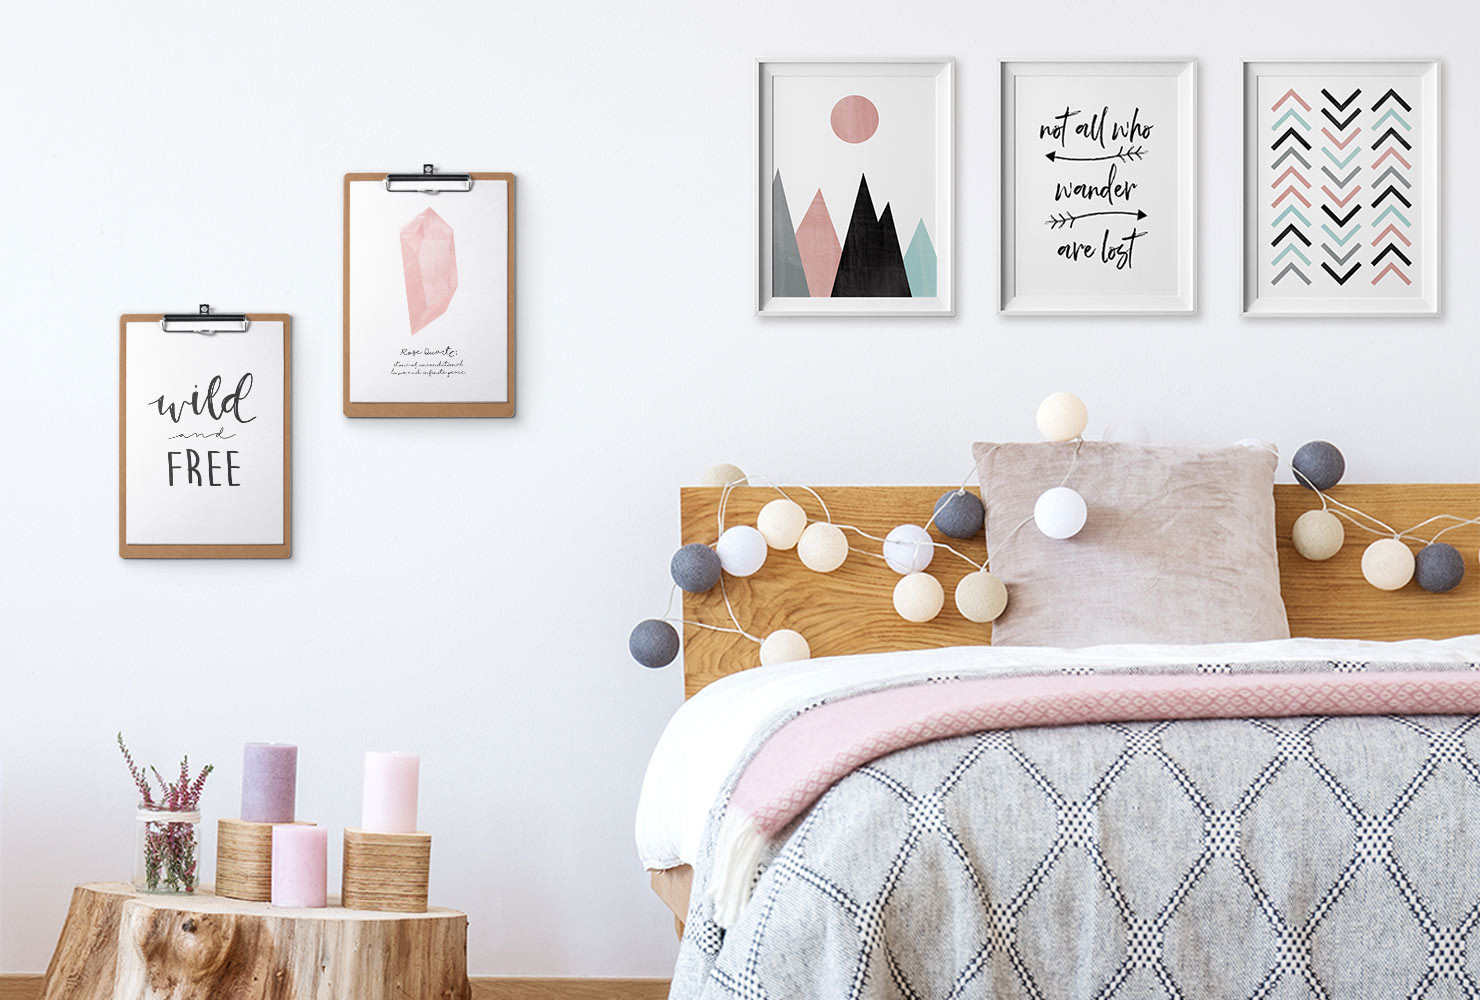 Diy Room  24 DIY Bedroom Decor Ideas To Inspire You With Printables